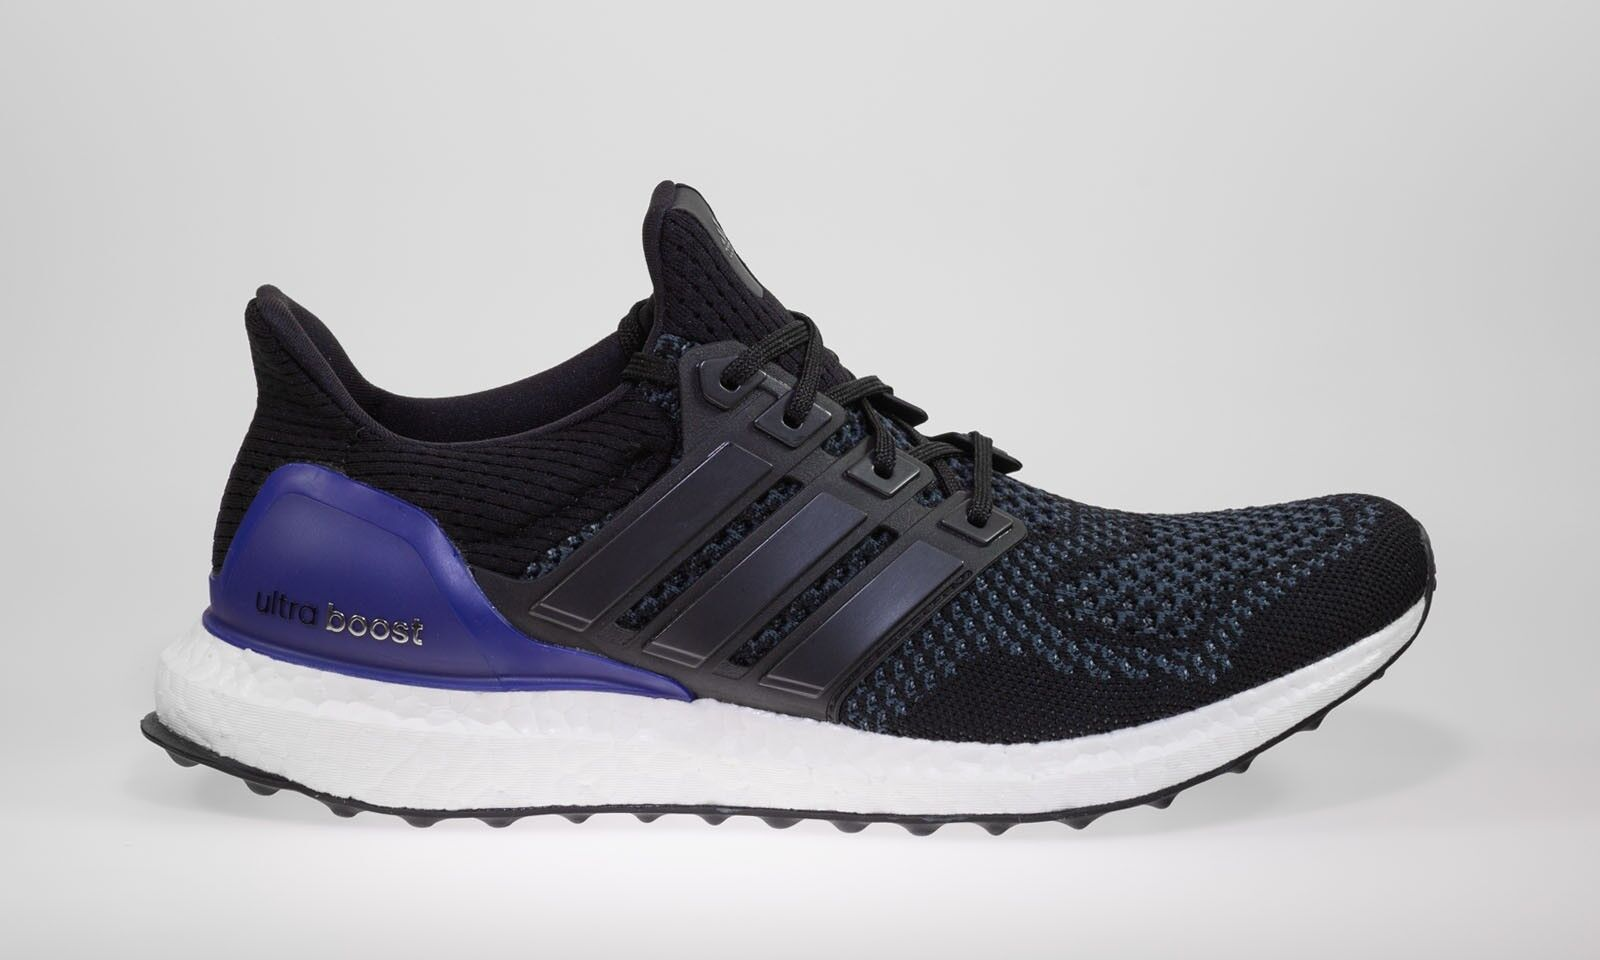 Adidas Ultra Boost 1.0 OG Black Purple Gold Size 6.5. B27171 yeezy nmd pk